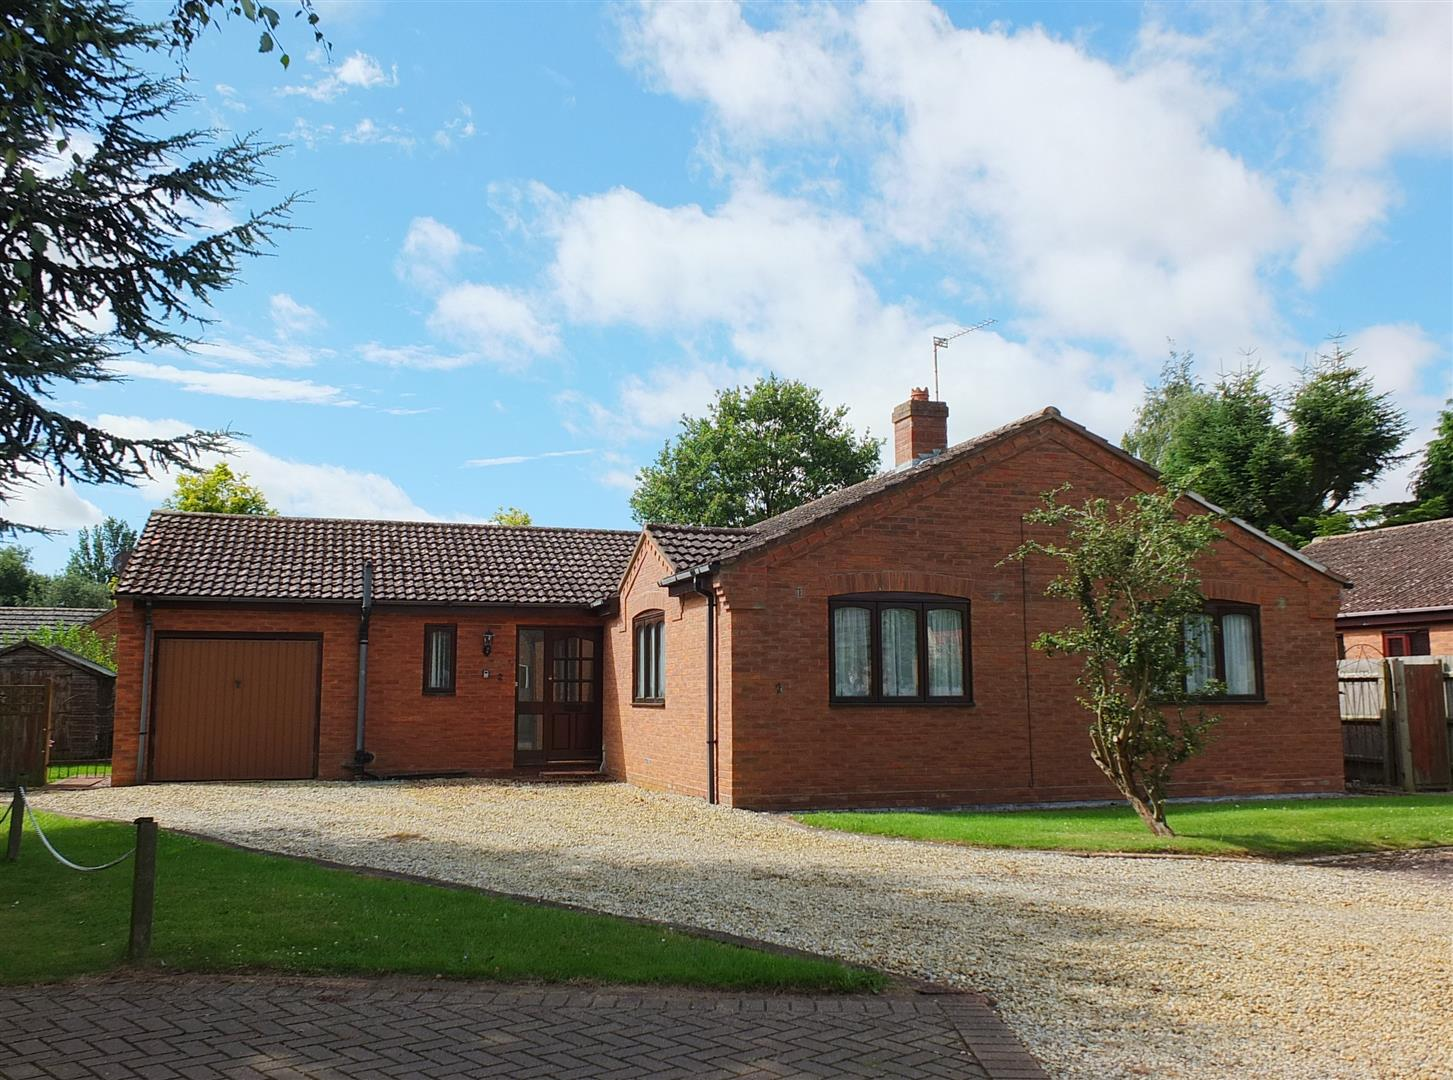 4 bed detached bungalow for sale in Sutton Bridge Spalding, PE12 9QN, PE12